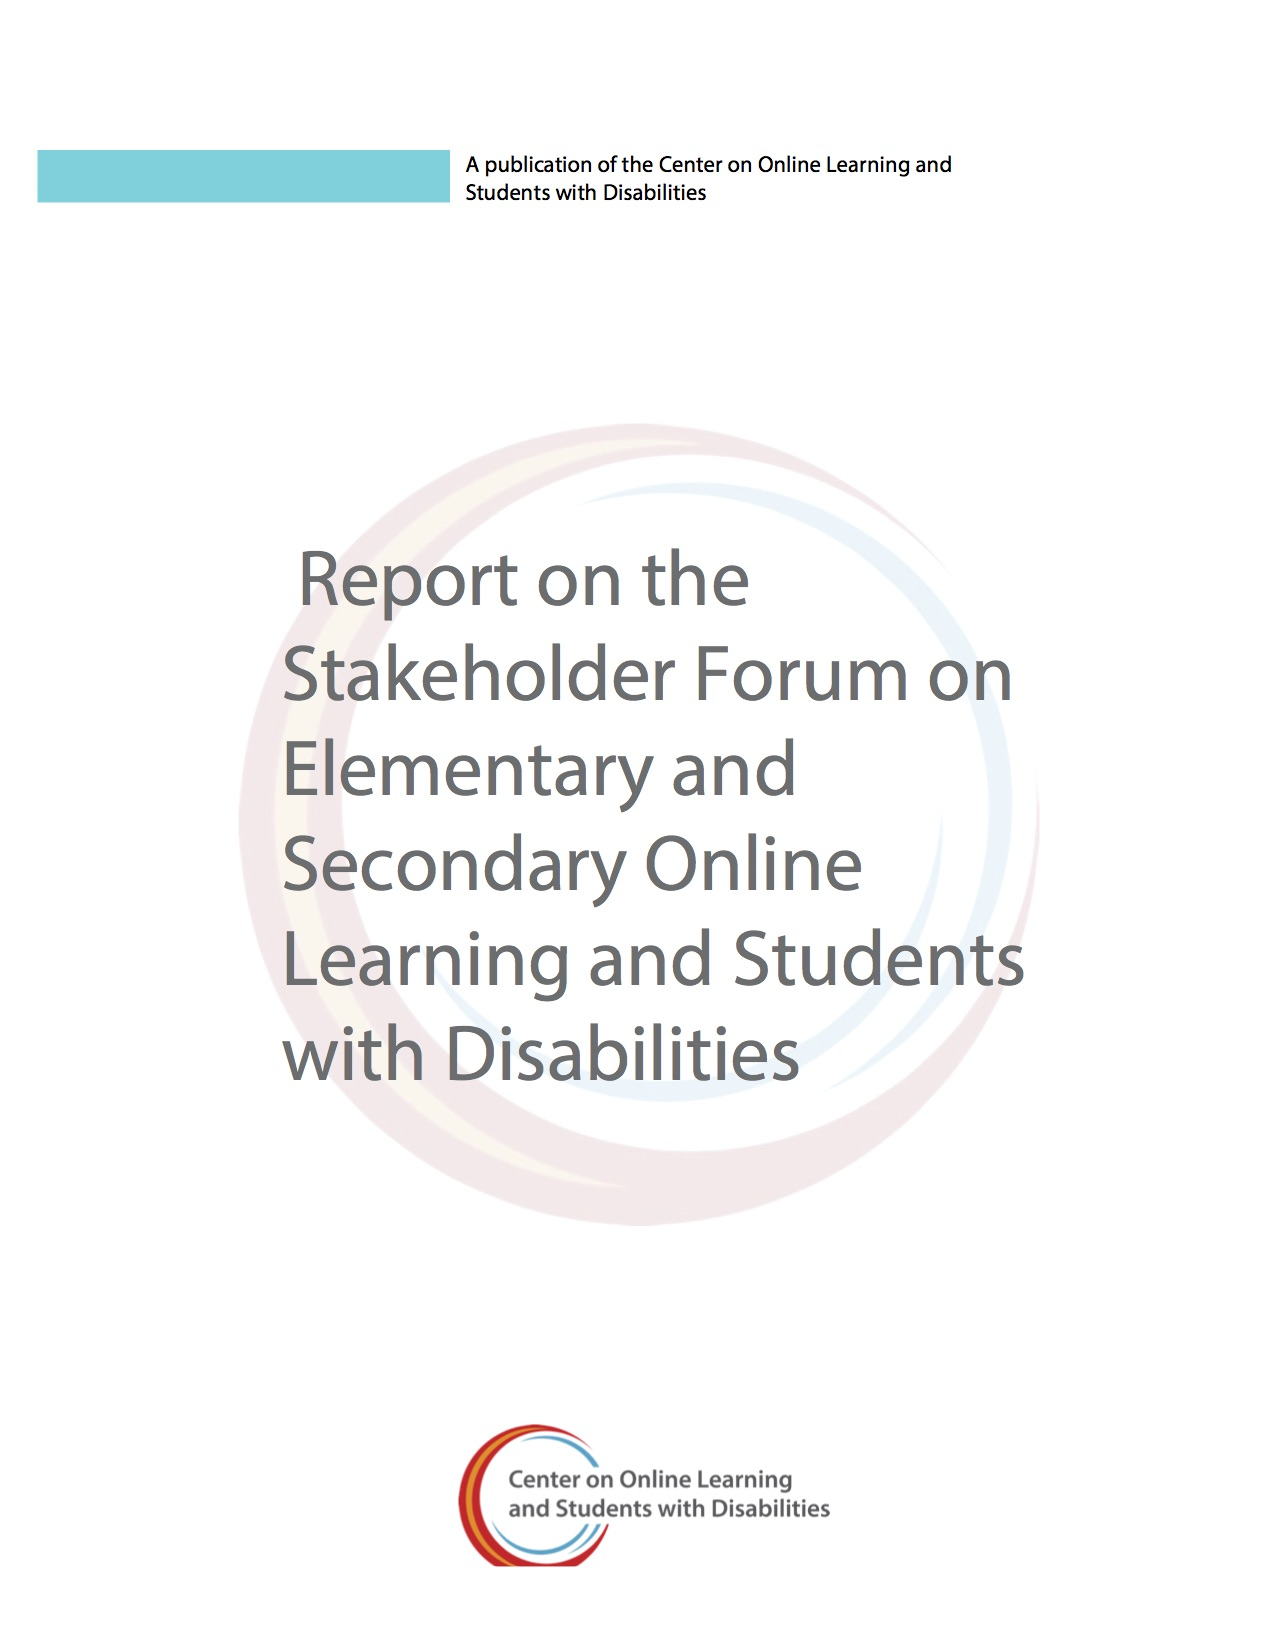 Report On The Stakeholder Forum On Elementary And Secondary Online Learning And Students With Disabilities